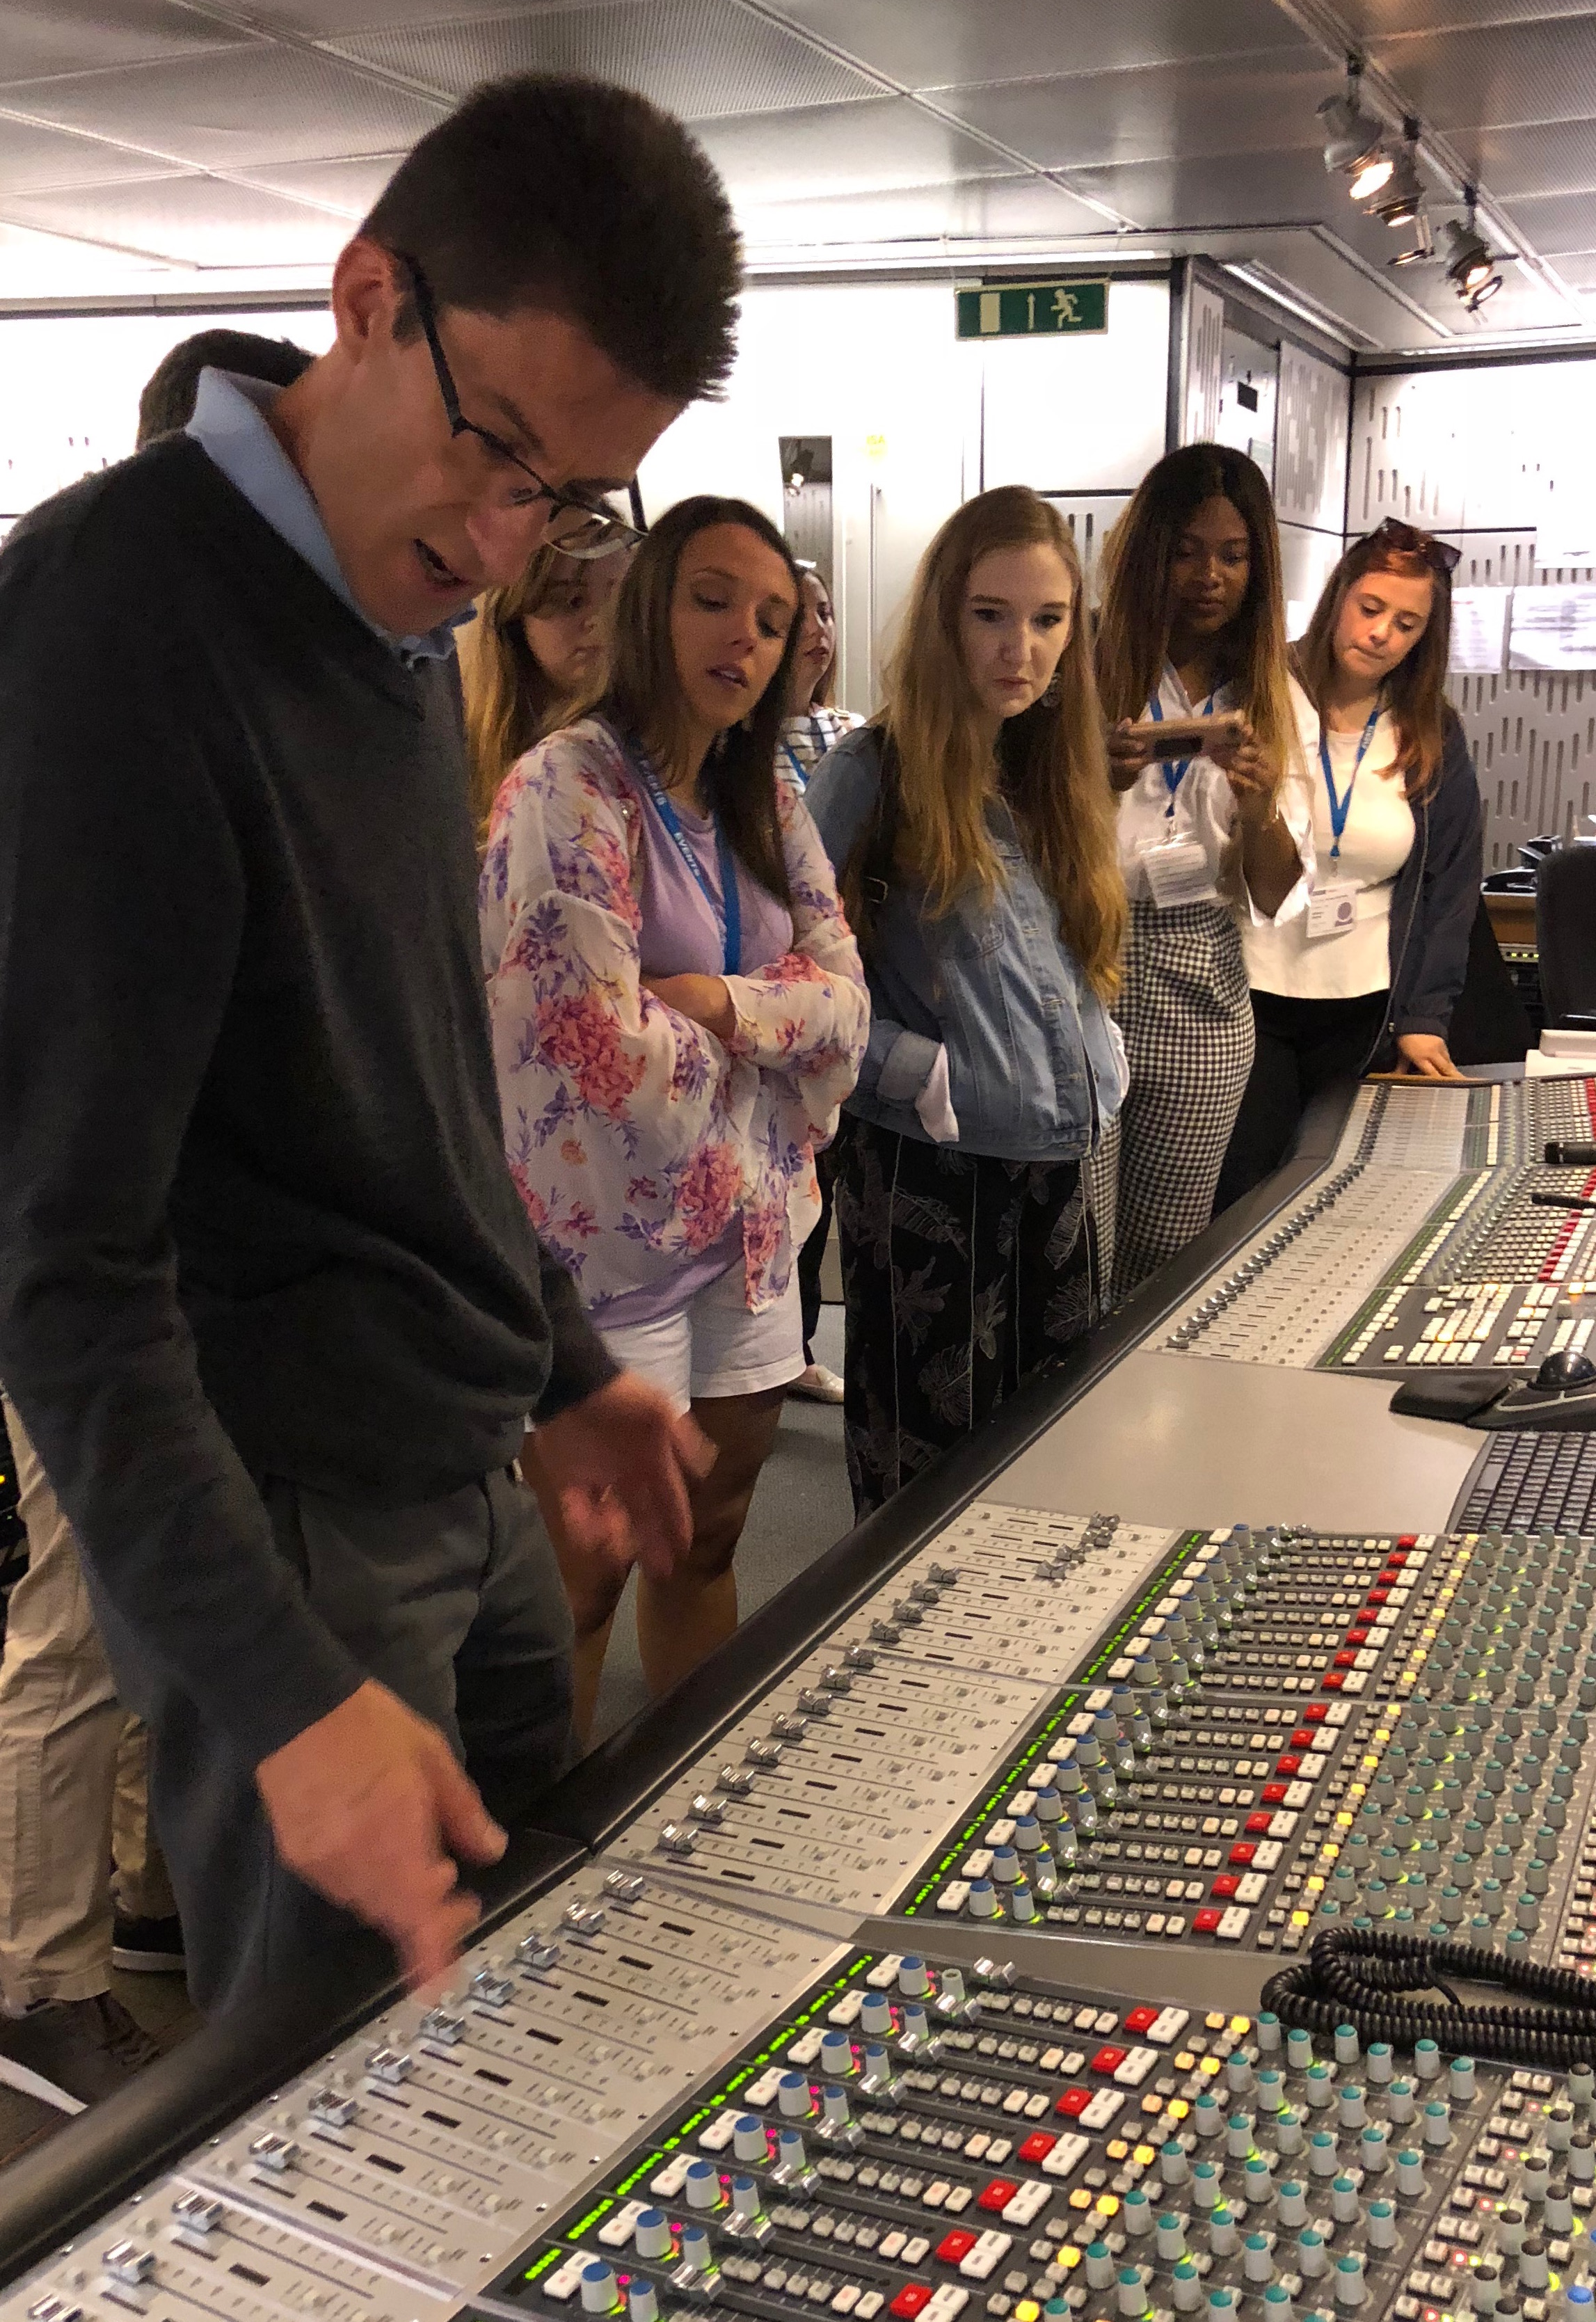 A visit to the BBC in London gave students an up-close look at some of its control room equipment and access to speak directly with operations personnel.